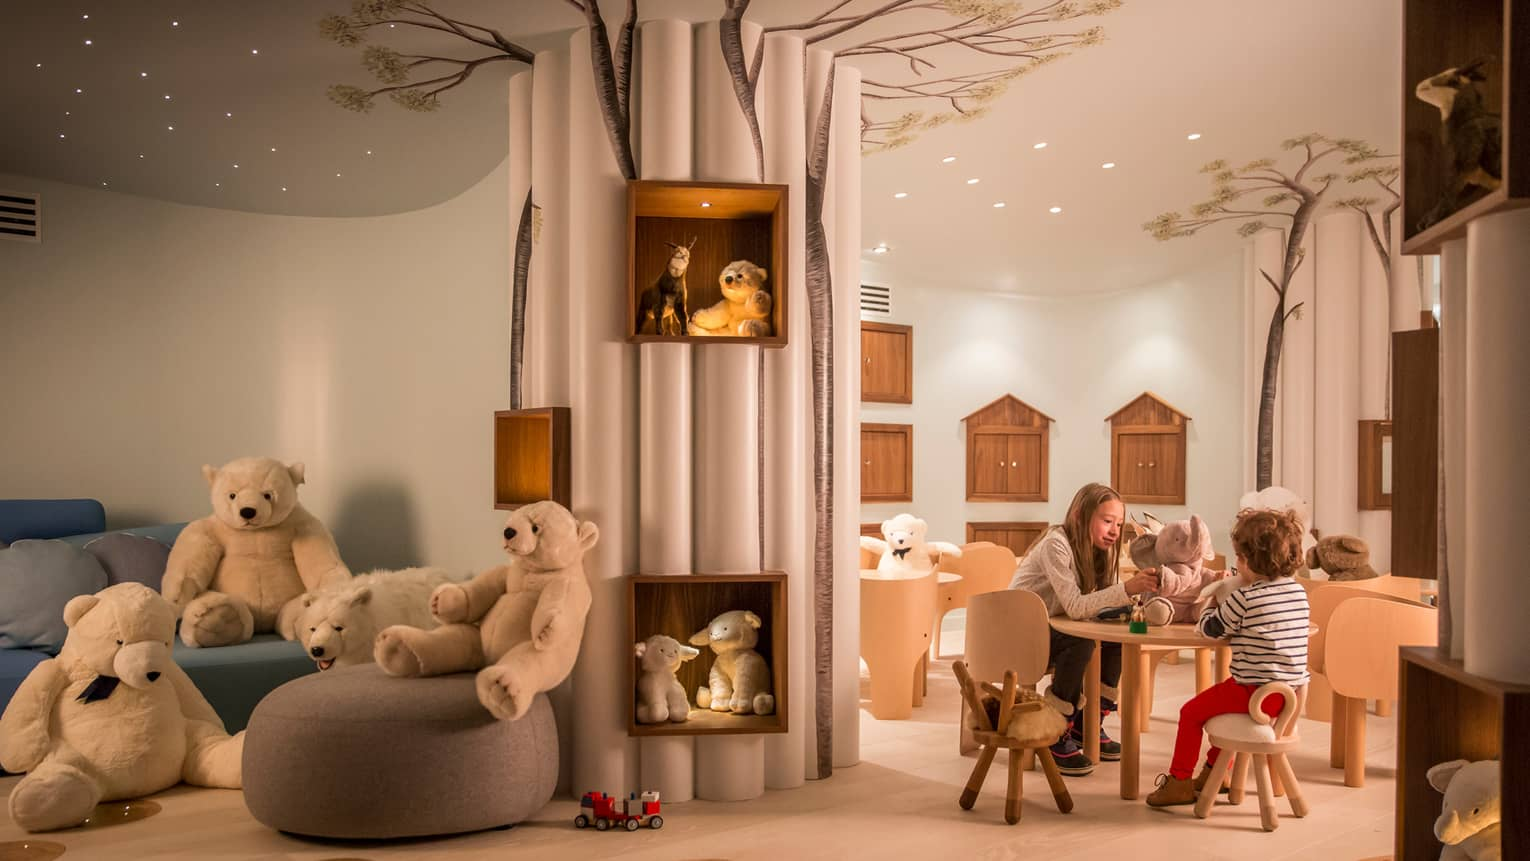 Kids play with toys at small table near chairs, stuffed bears in Kid Kingdom playroom